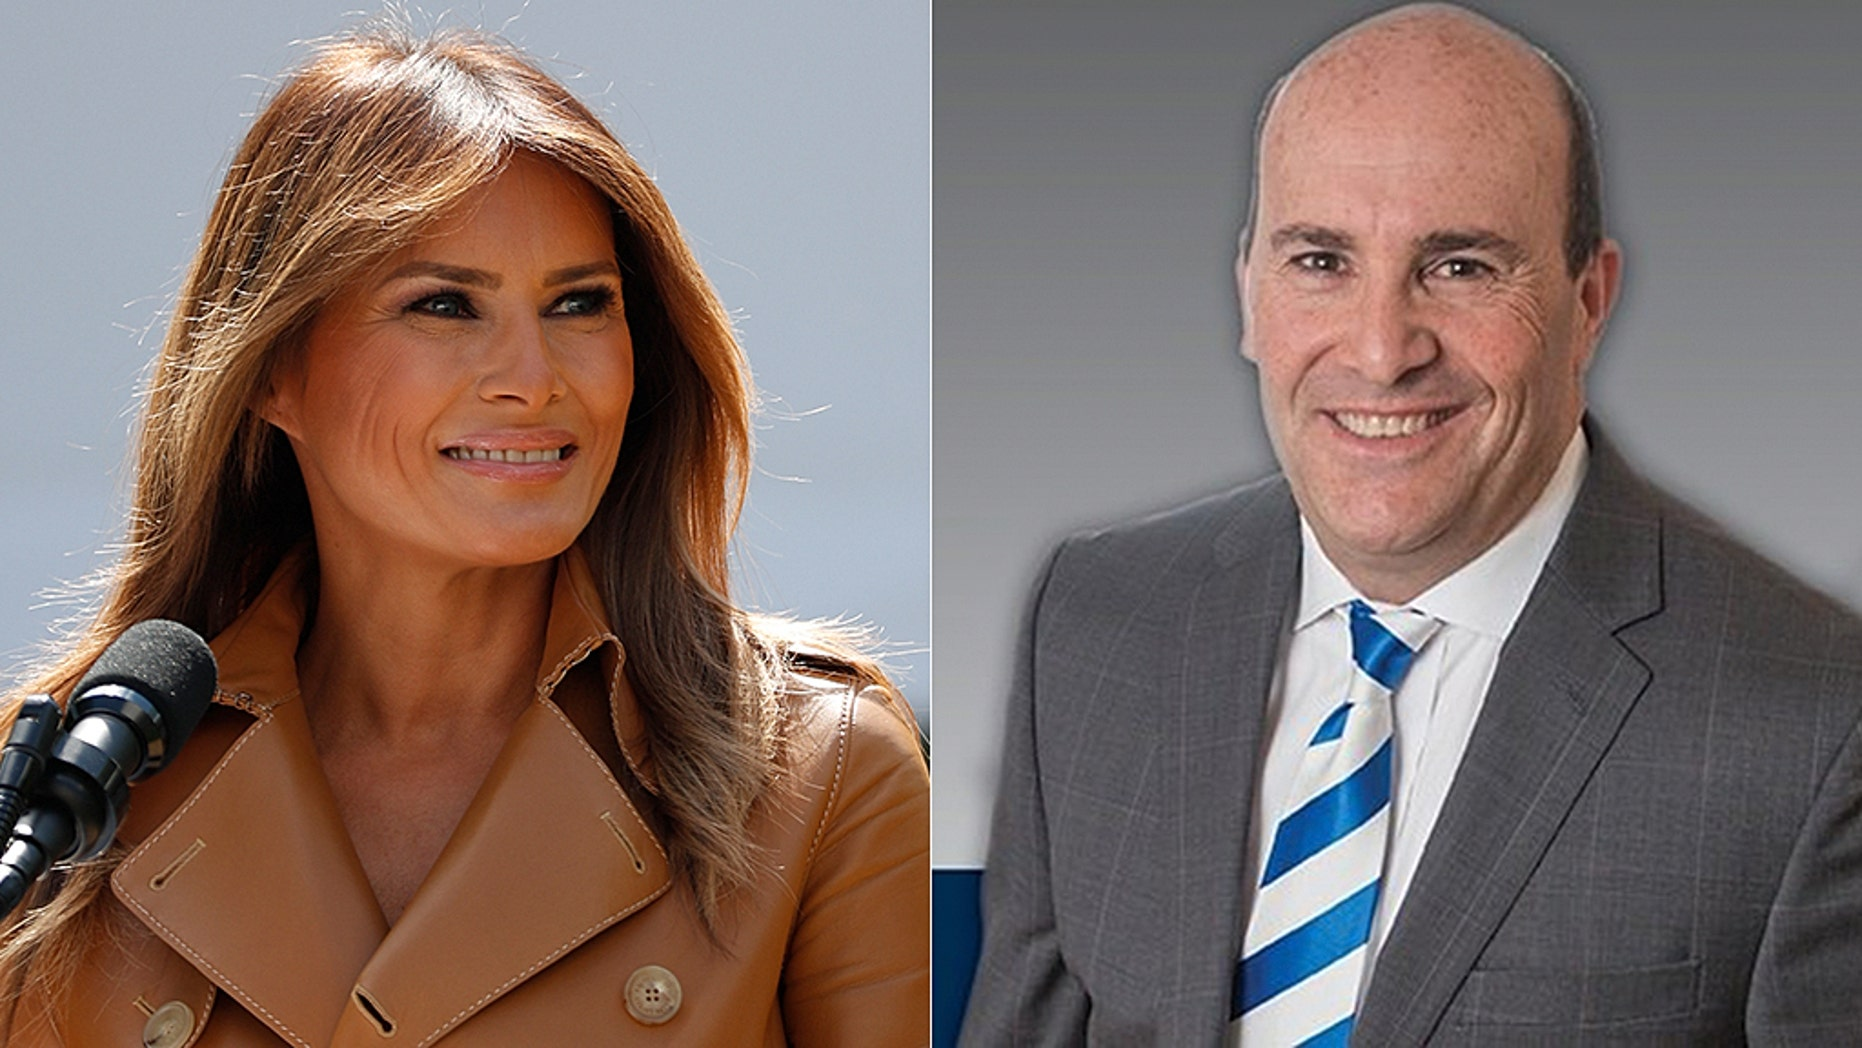 Mark Roberts, an Oregon congressional candidate, is facing backlash for a derogatory tweet he published regarding first lady Melania Trump.